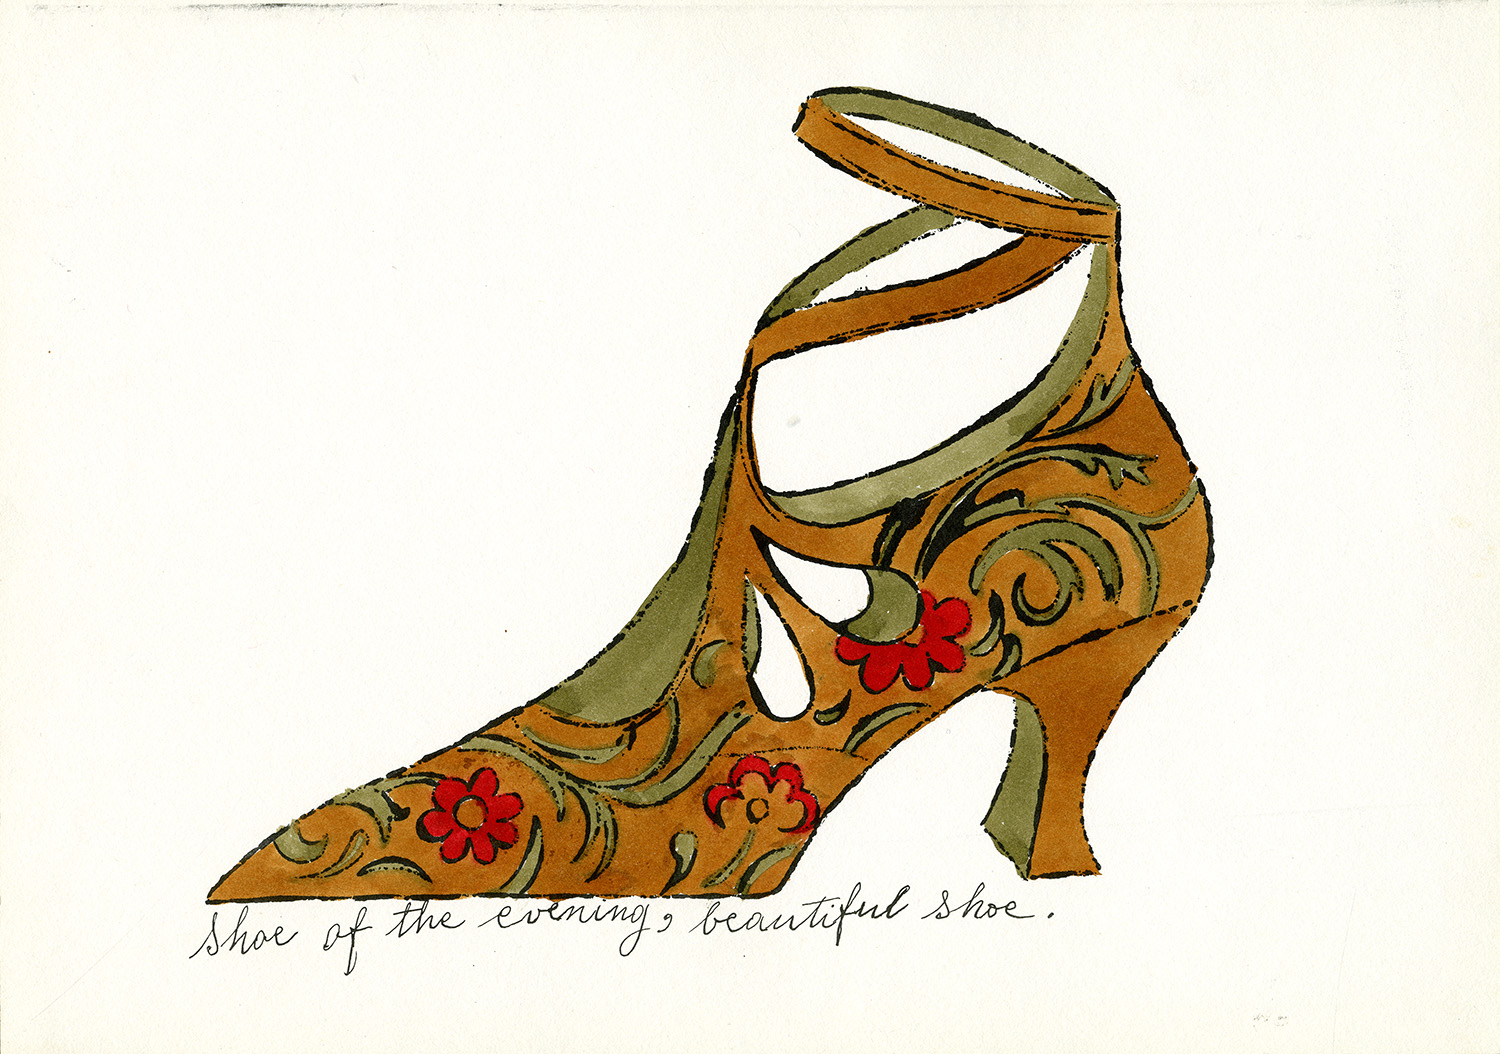 Andy Warhol, Shoe of the Evening, Beautiful Shoe, ca. 1955, ©AWF.